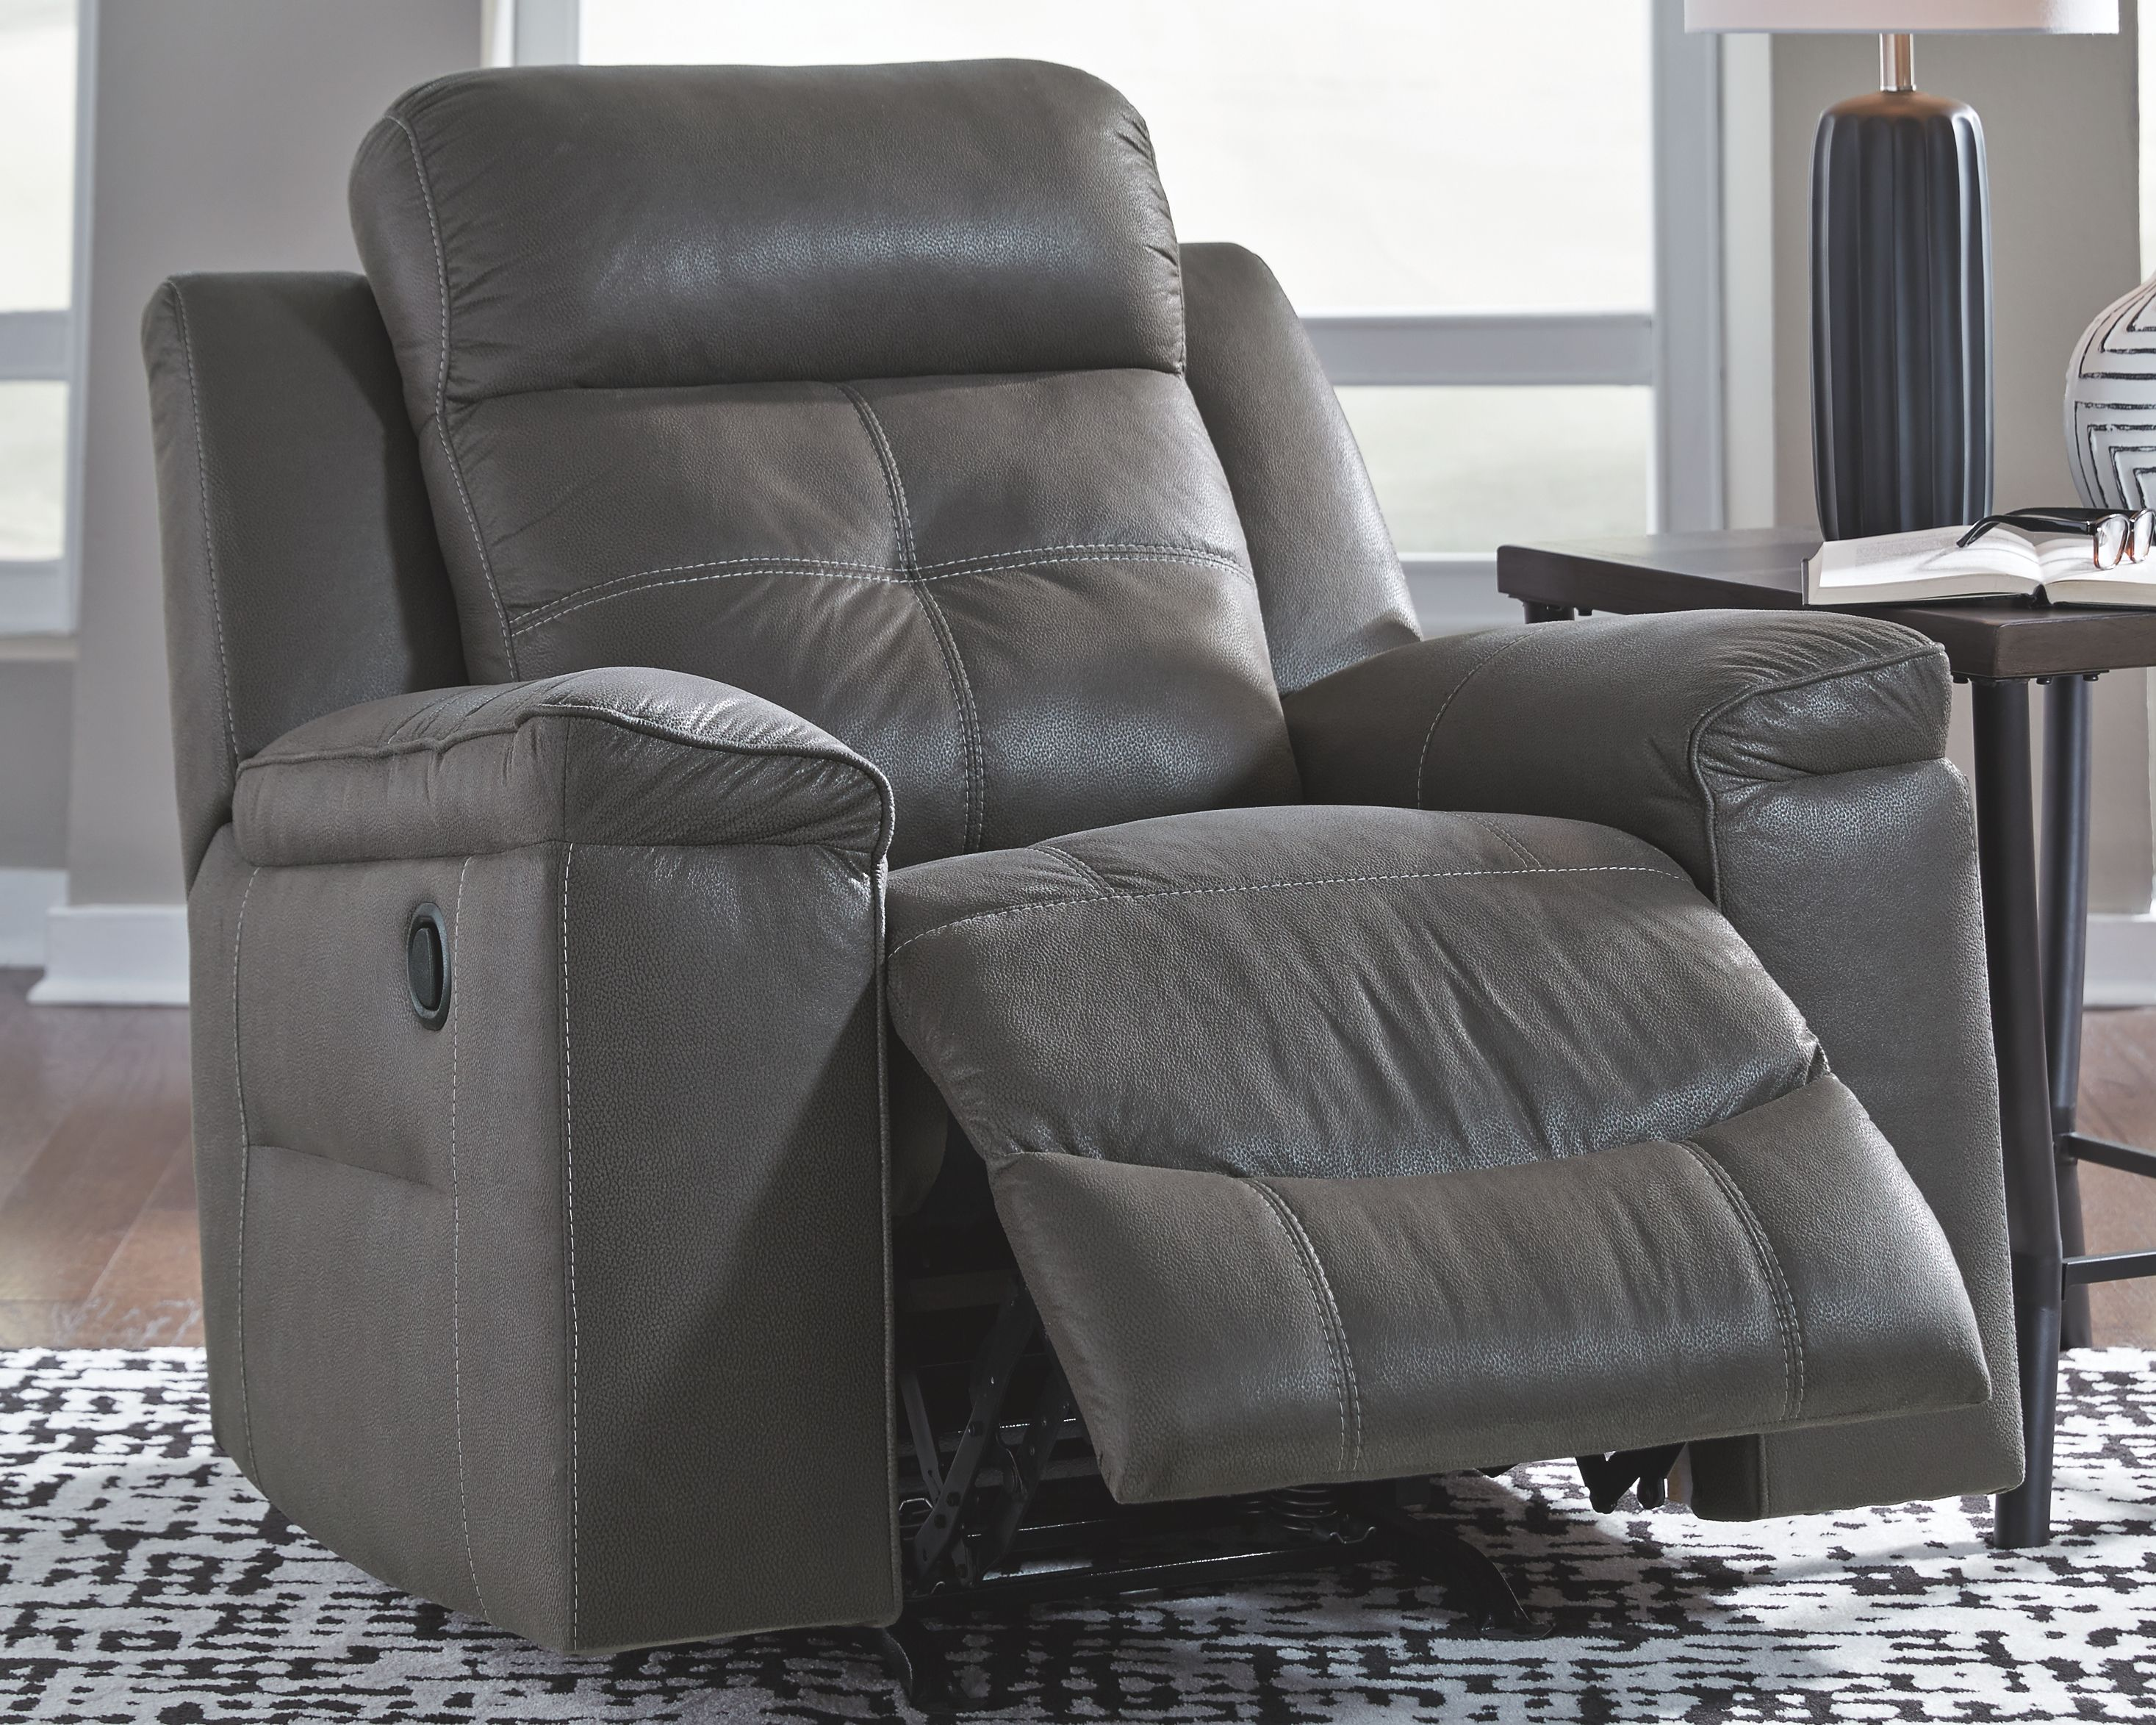 Magnificent Jesolo Recliner Dark Gray Products In 2019 Recliner Bralicious Painted Fabric Chair Ideas Braliciousco